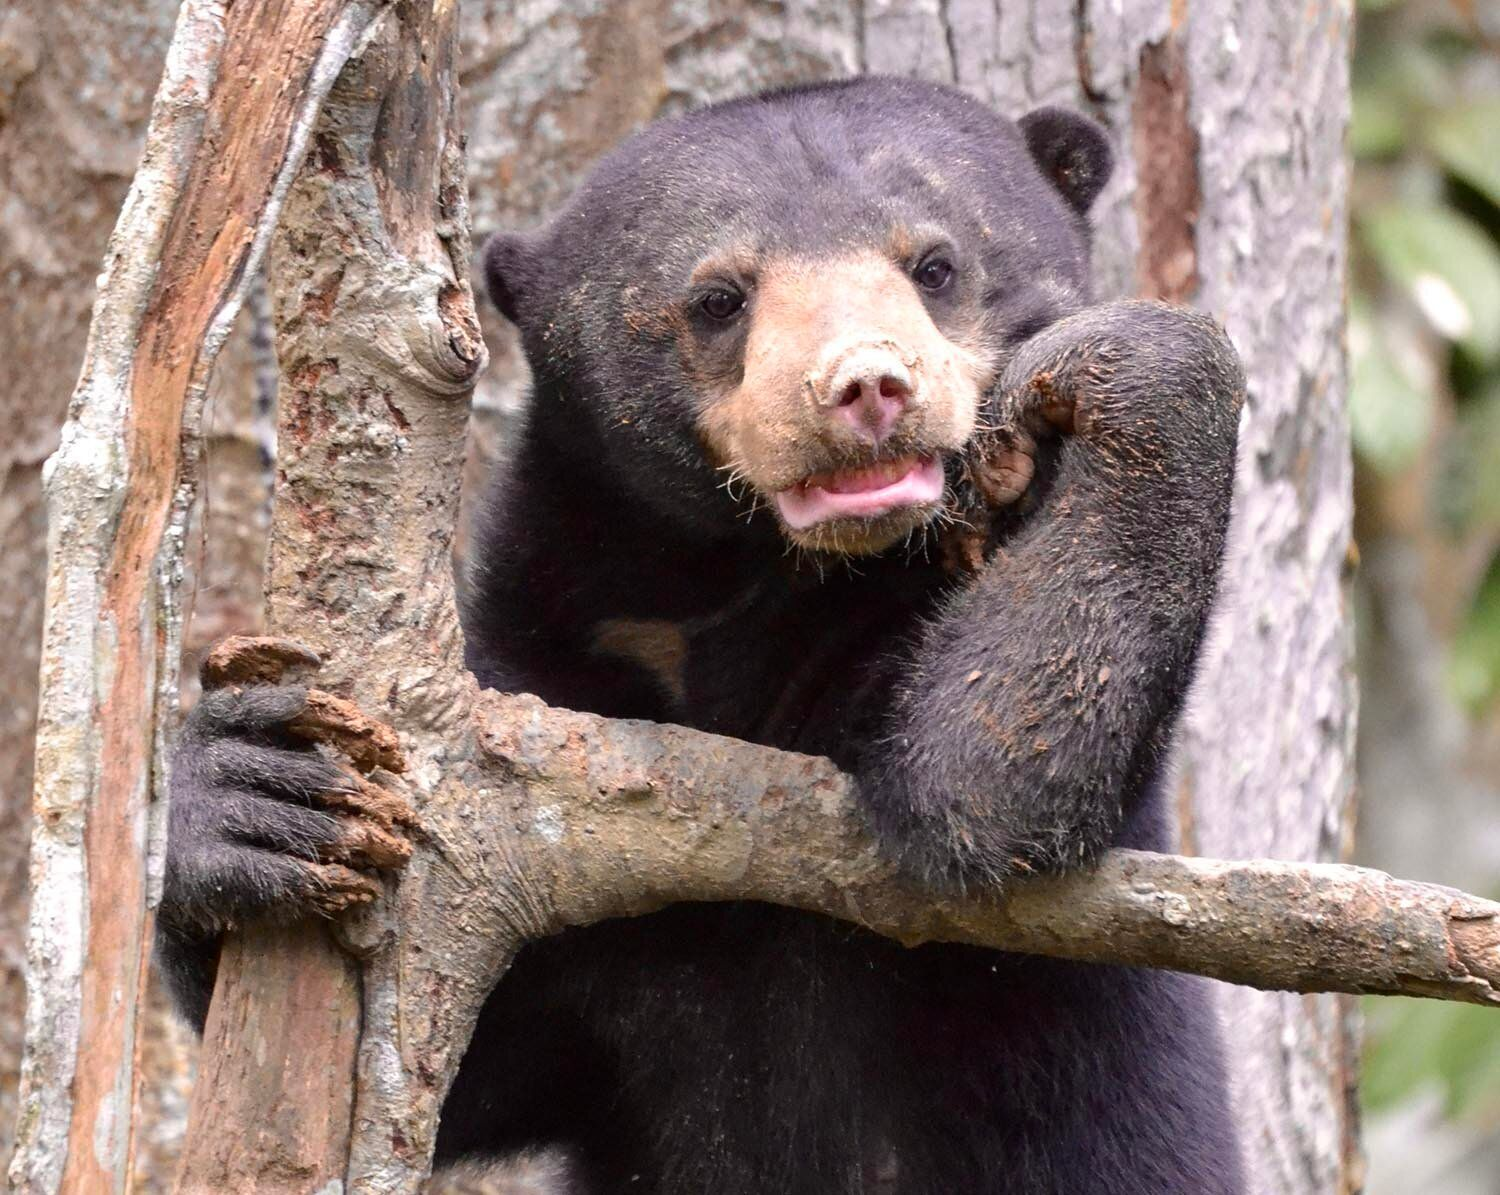 The Bornean Sun Bear Conservation Centre relies on revenue from foreign tourists to feed its 43 sun bears. It buys fruits and